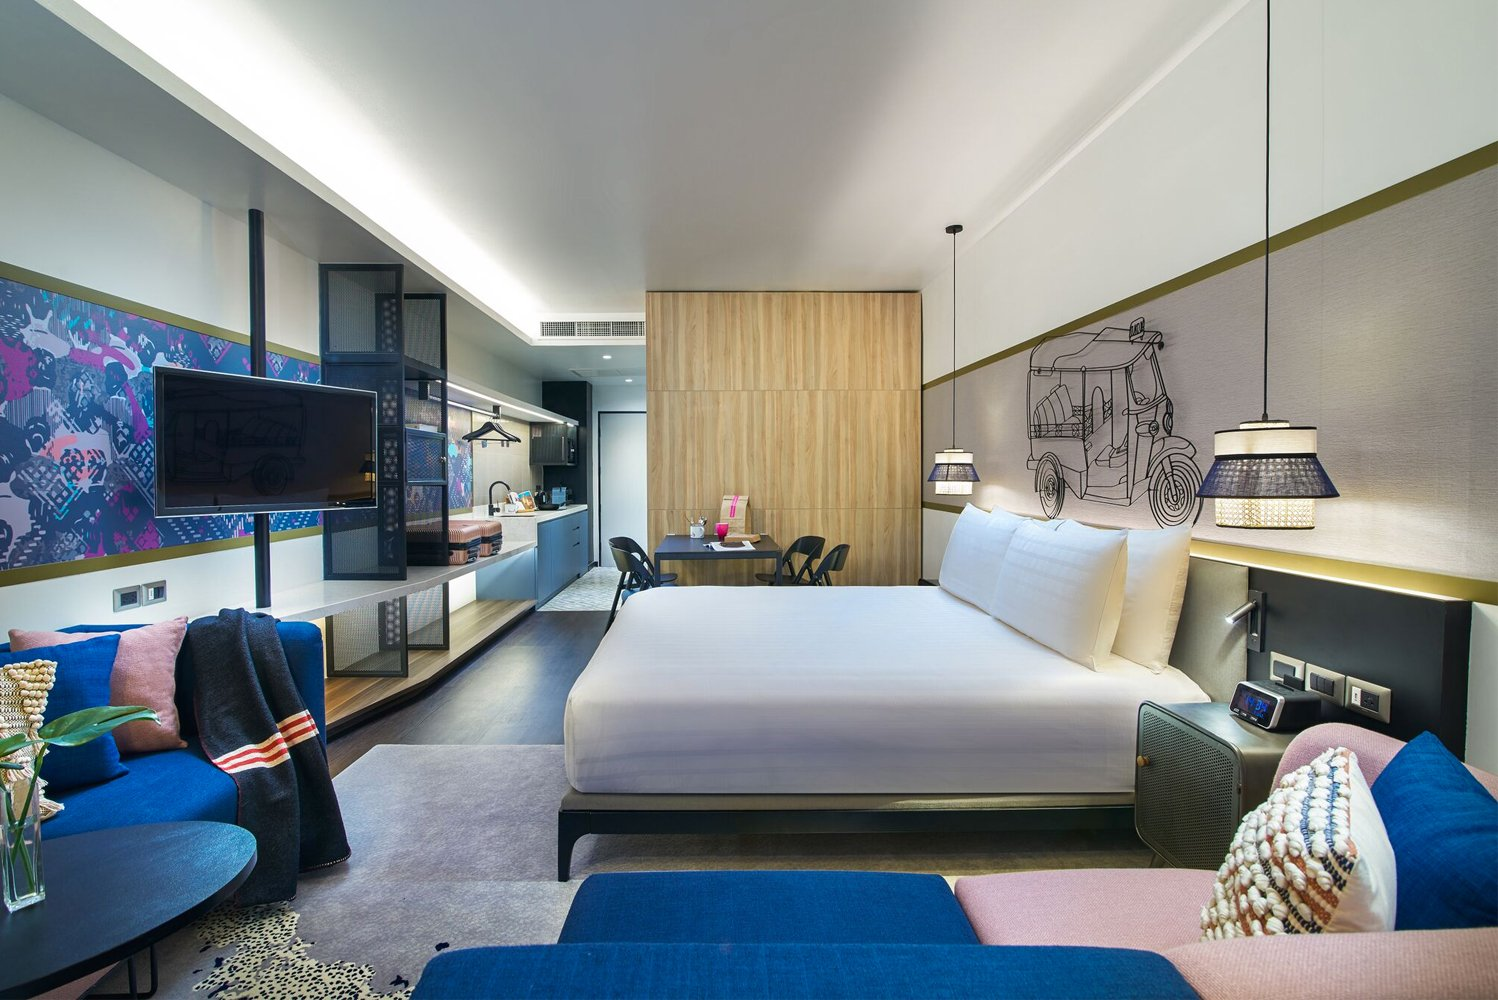 HBA DNA announced its first major project with Bangkok-based ONYX Hospitality Group – Shama Hub, an all-new serviced apartments and co-living concept.